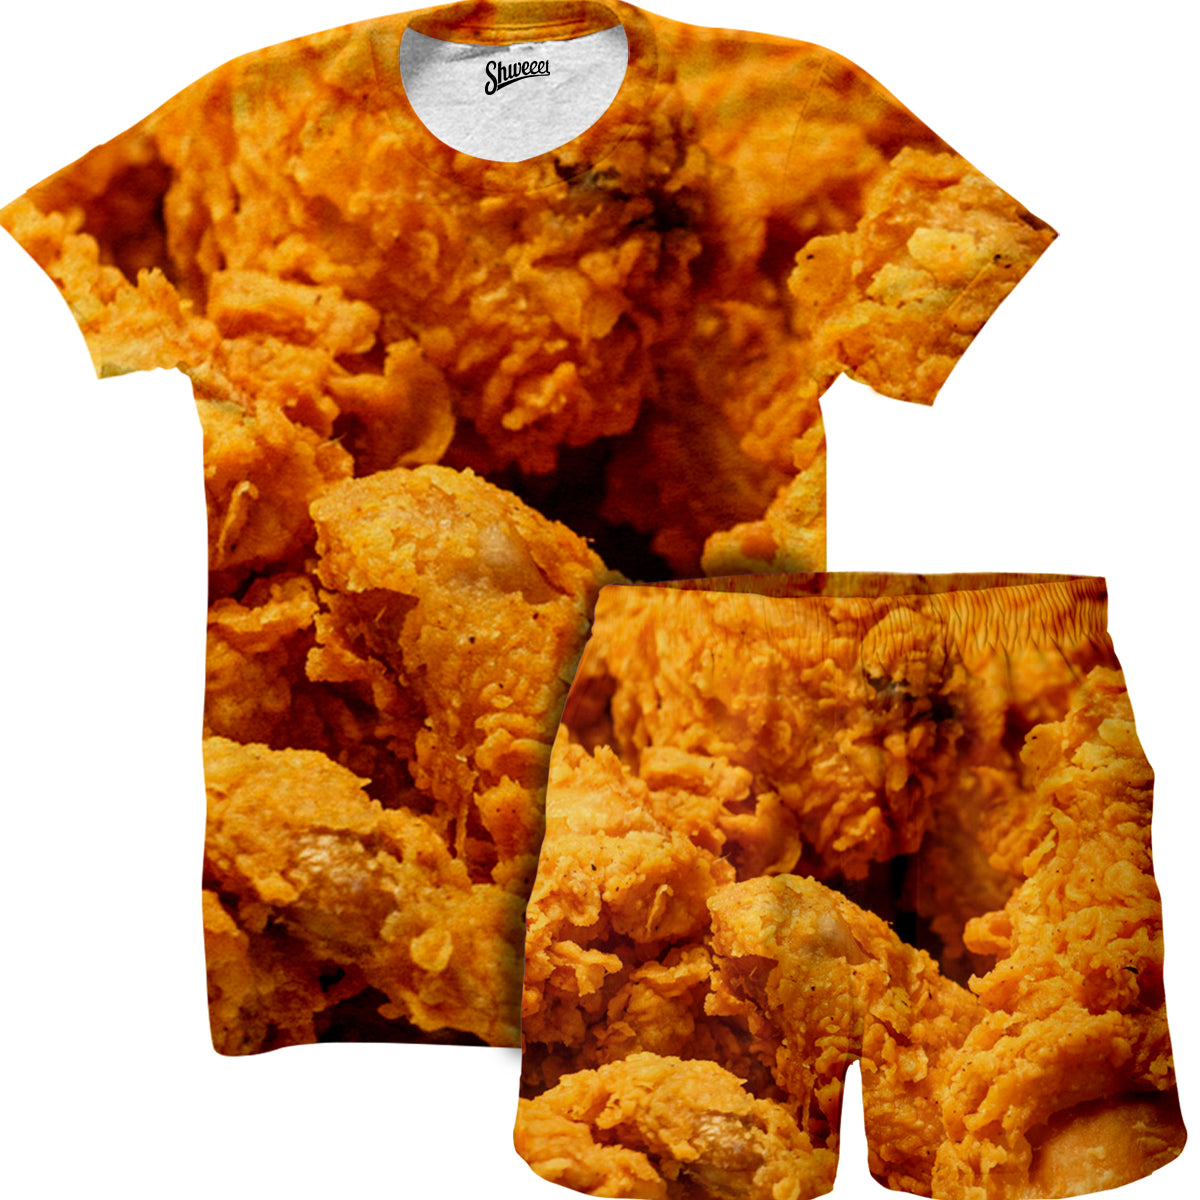 Chicken Fried Shirt and Shorts Combo - Shweeet